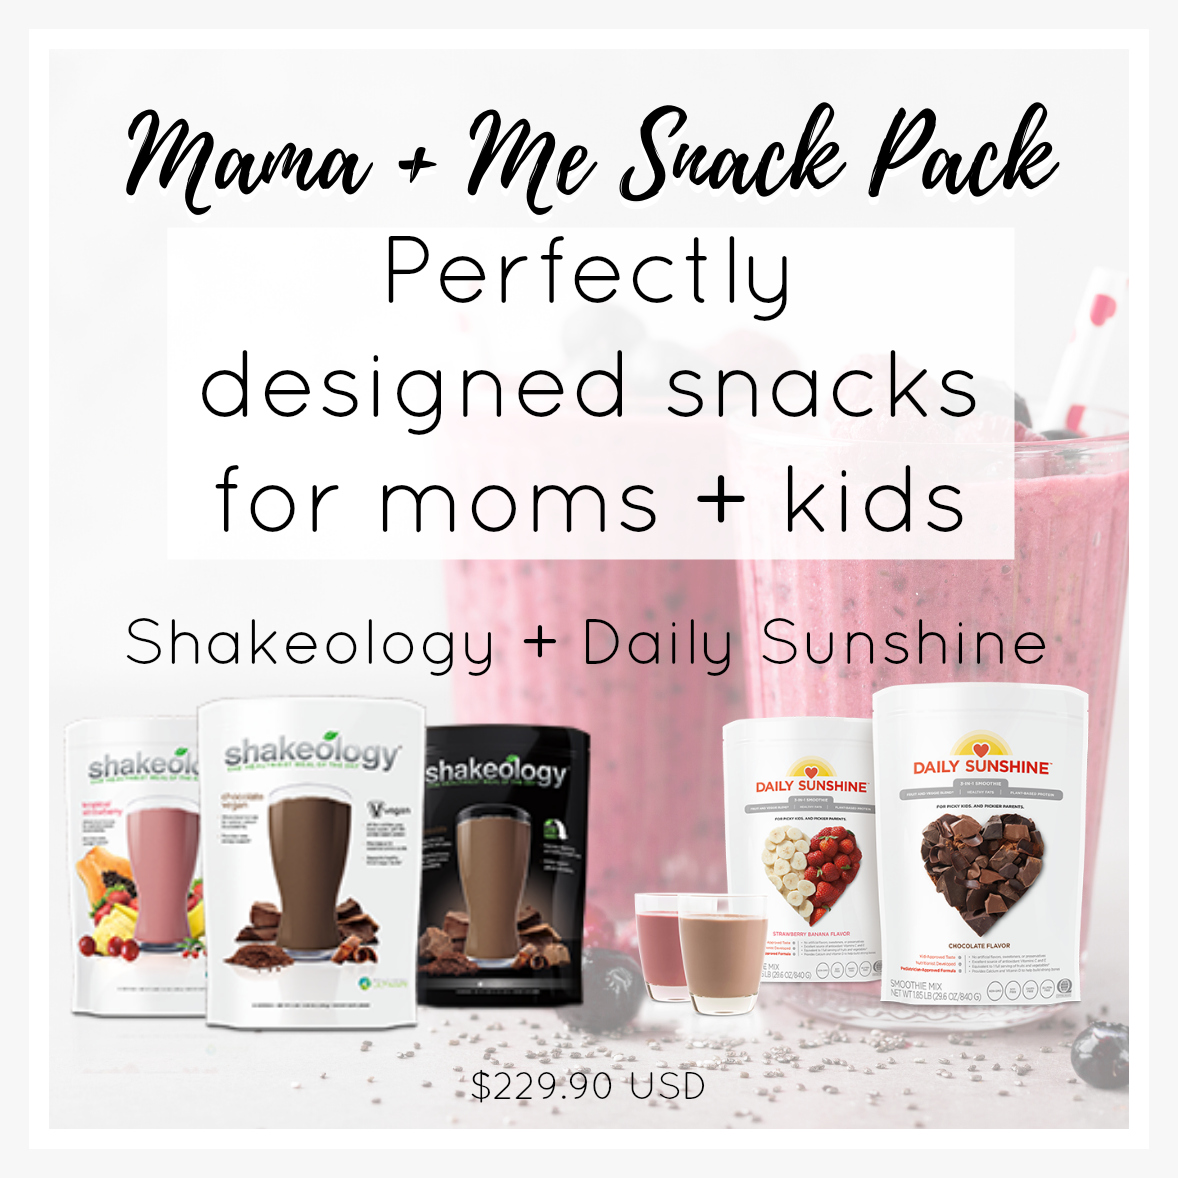 16. Mama + Me Snack Pack